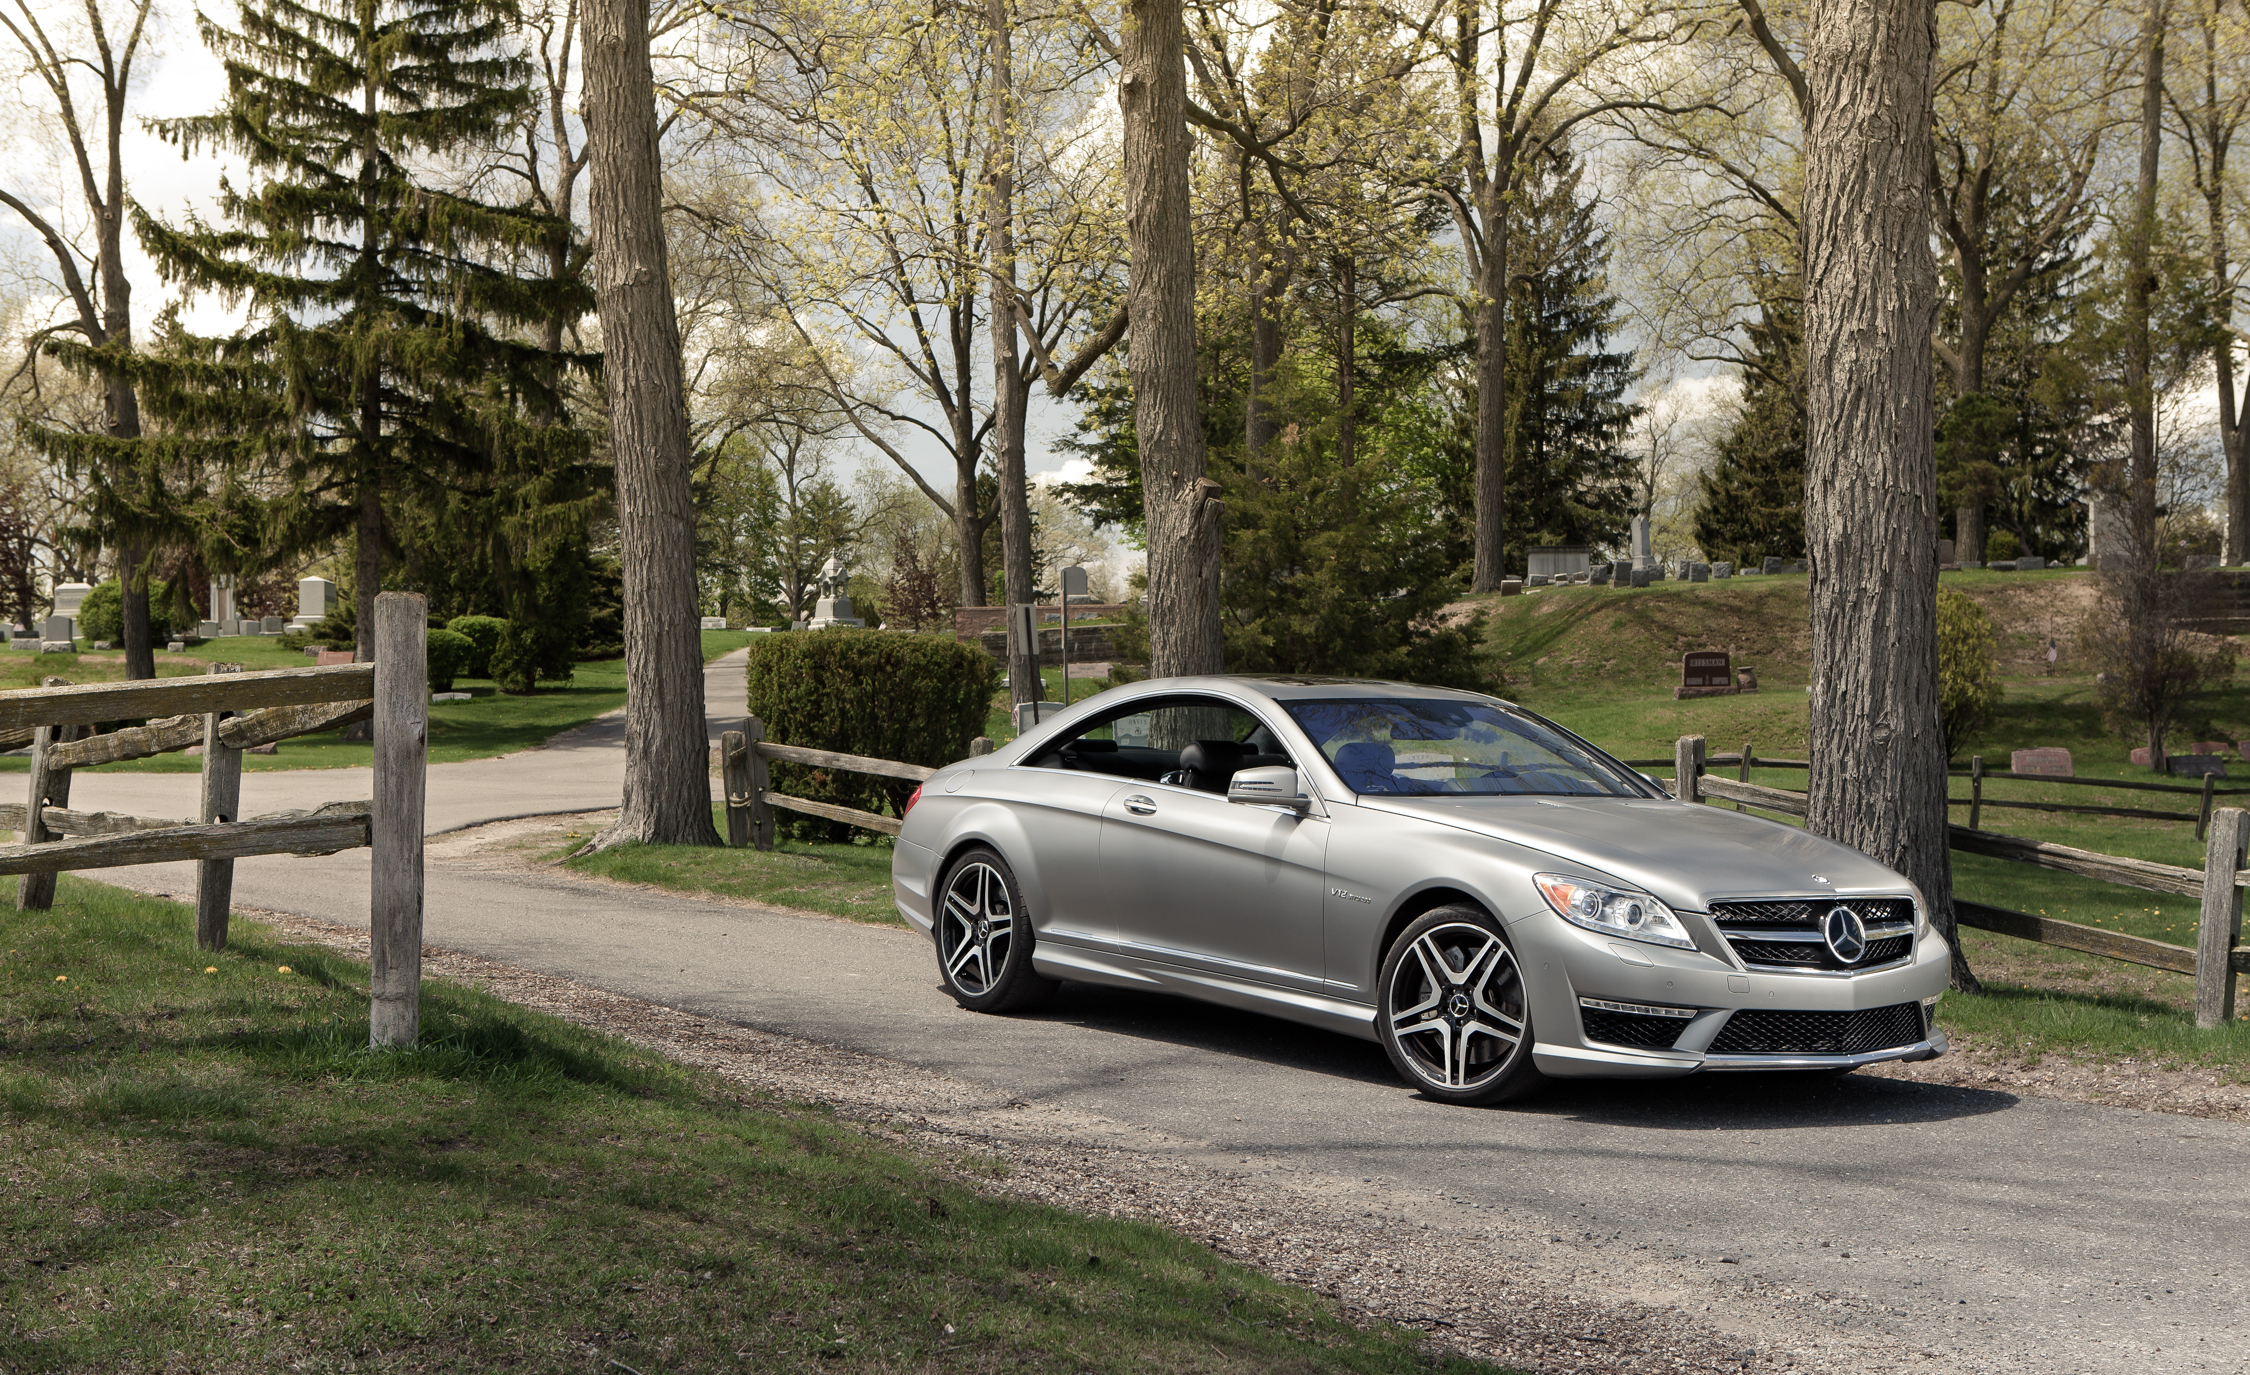 2013 Mercedes Benz CL65 AMG Exterior Front And Side (Photo 2 of 27)